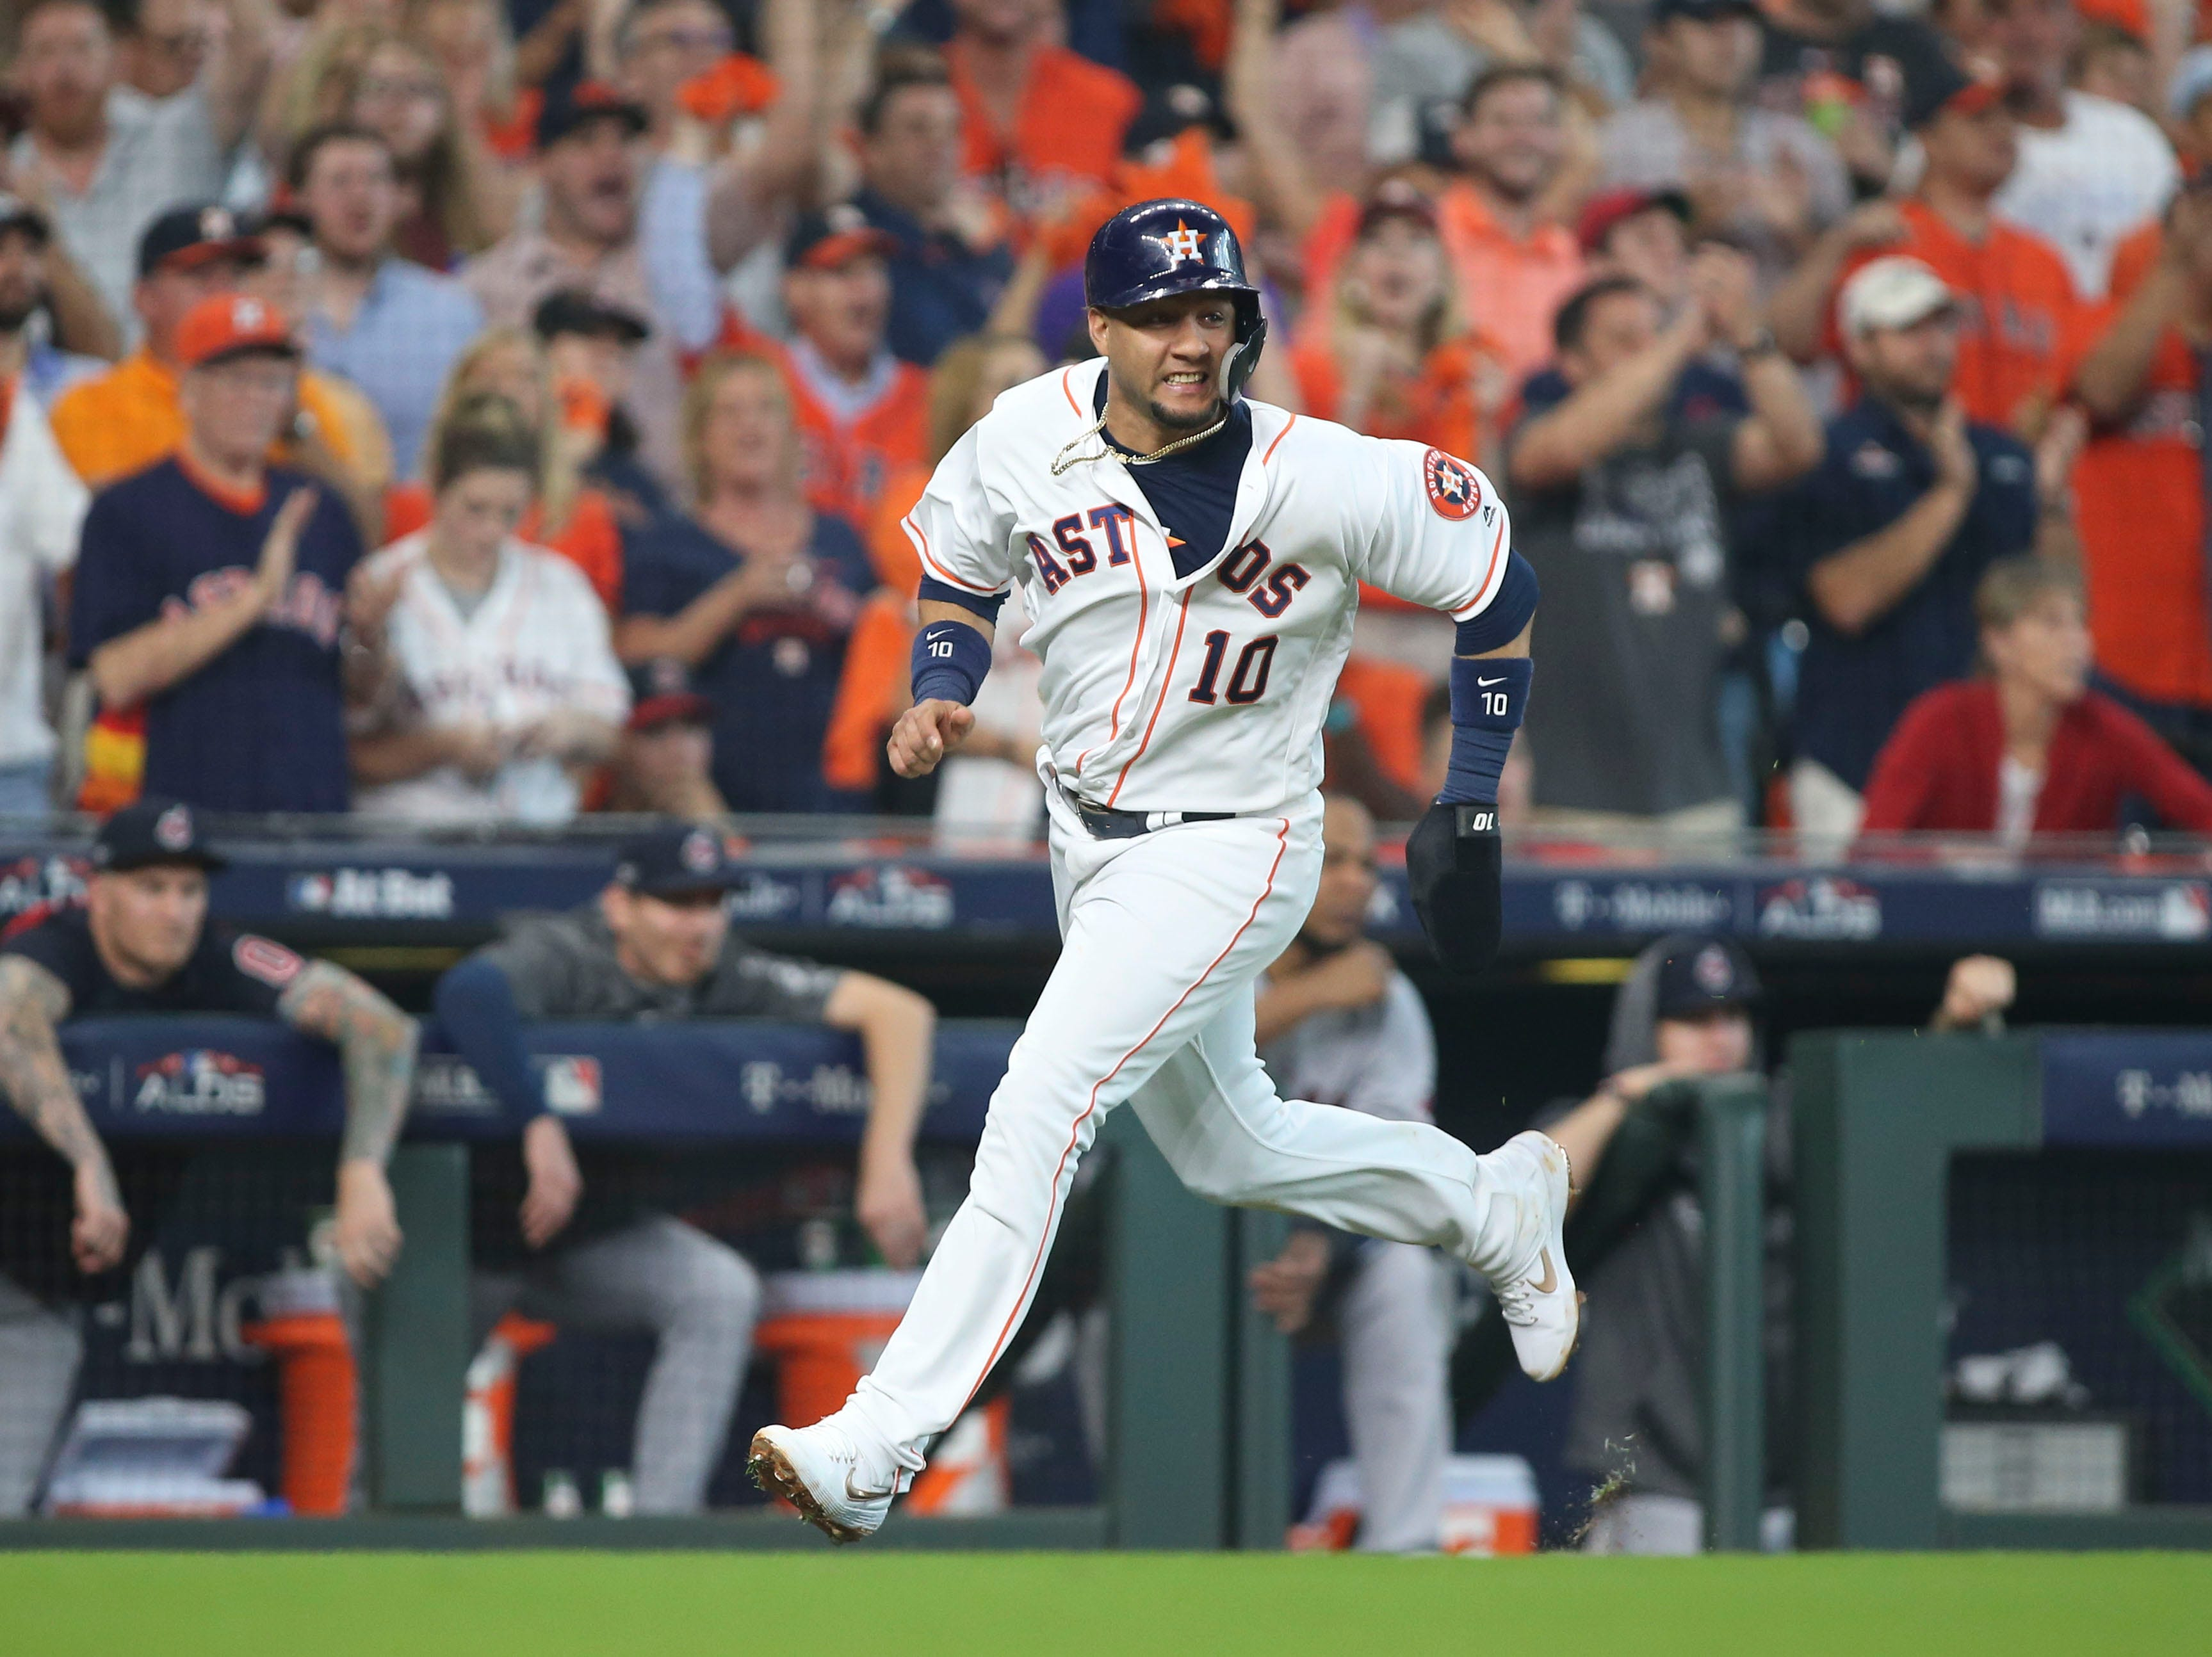 ALDS Game 1: Houston's Yuli Gurriel comes around to score on an RBI single by Josh Reddick in the fourth inning.